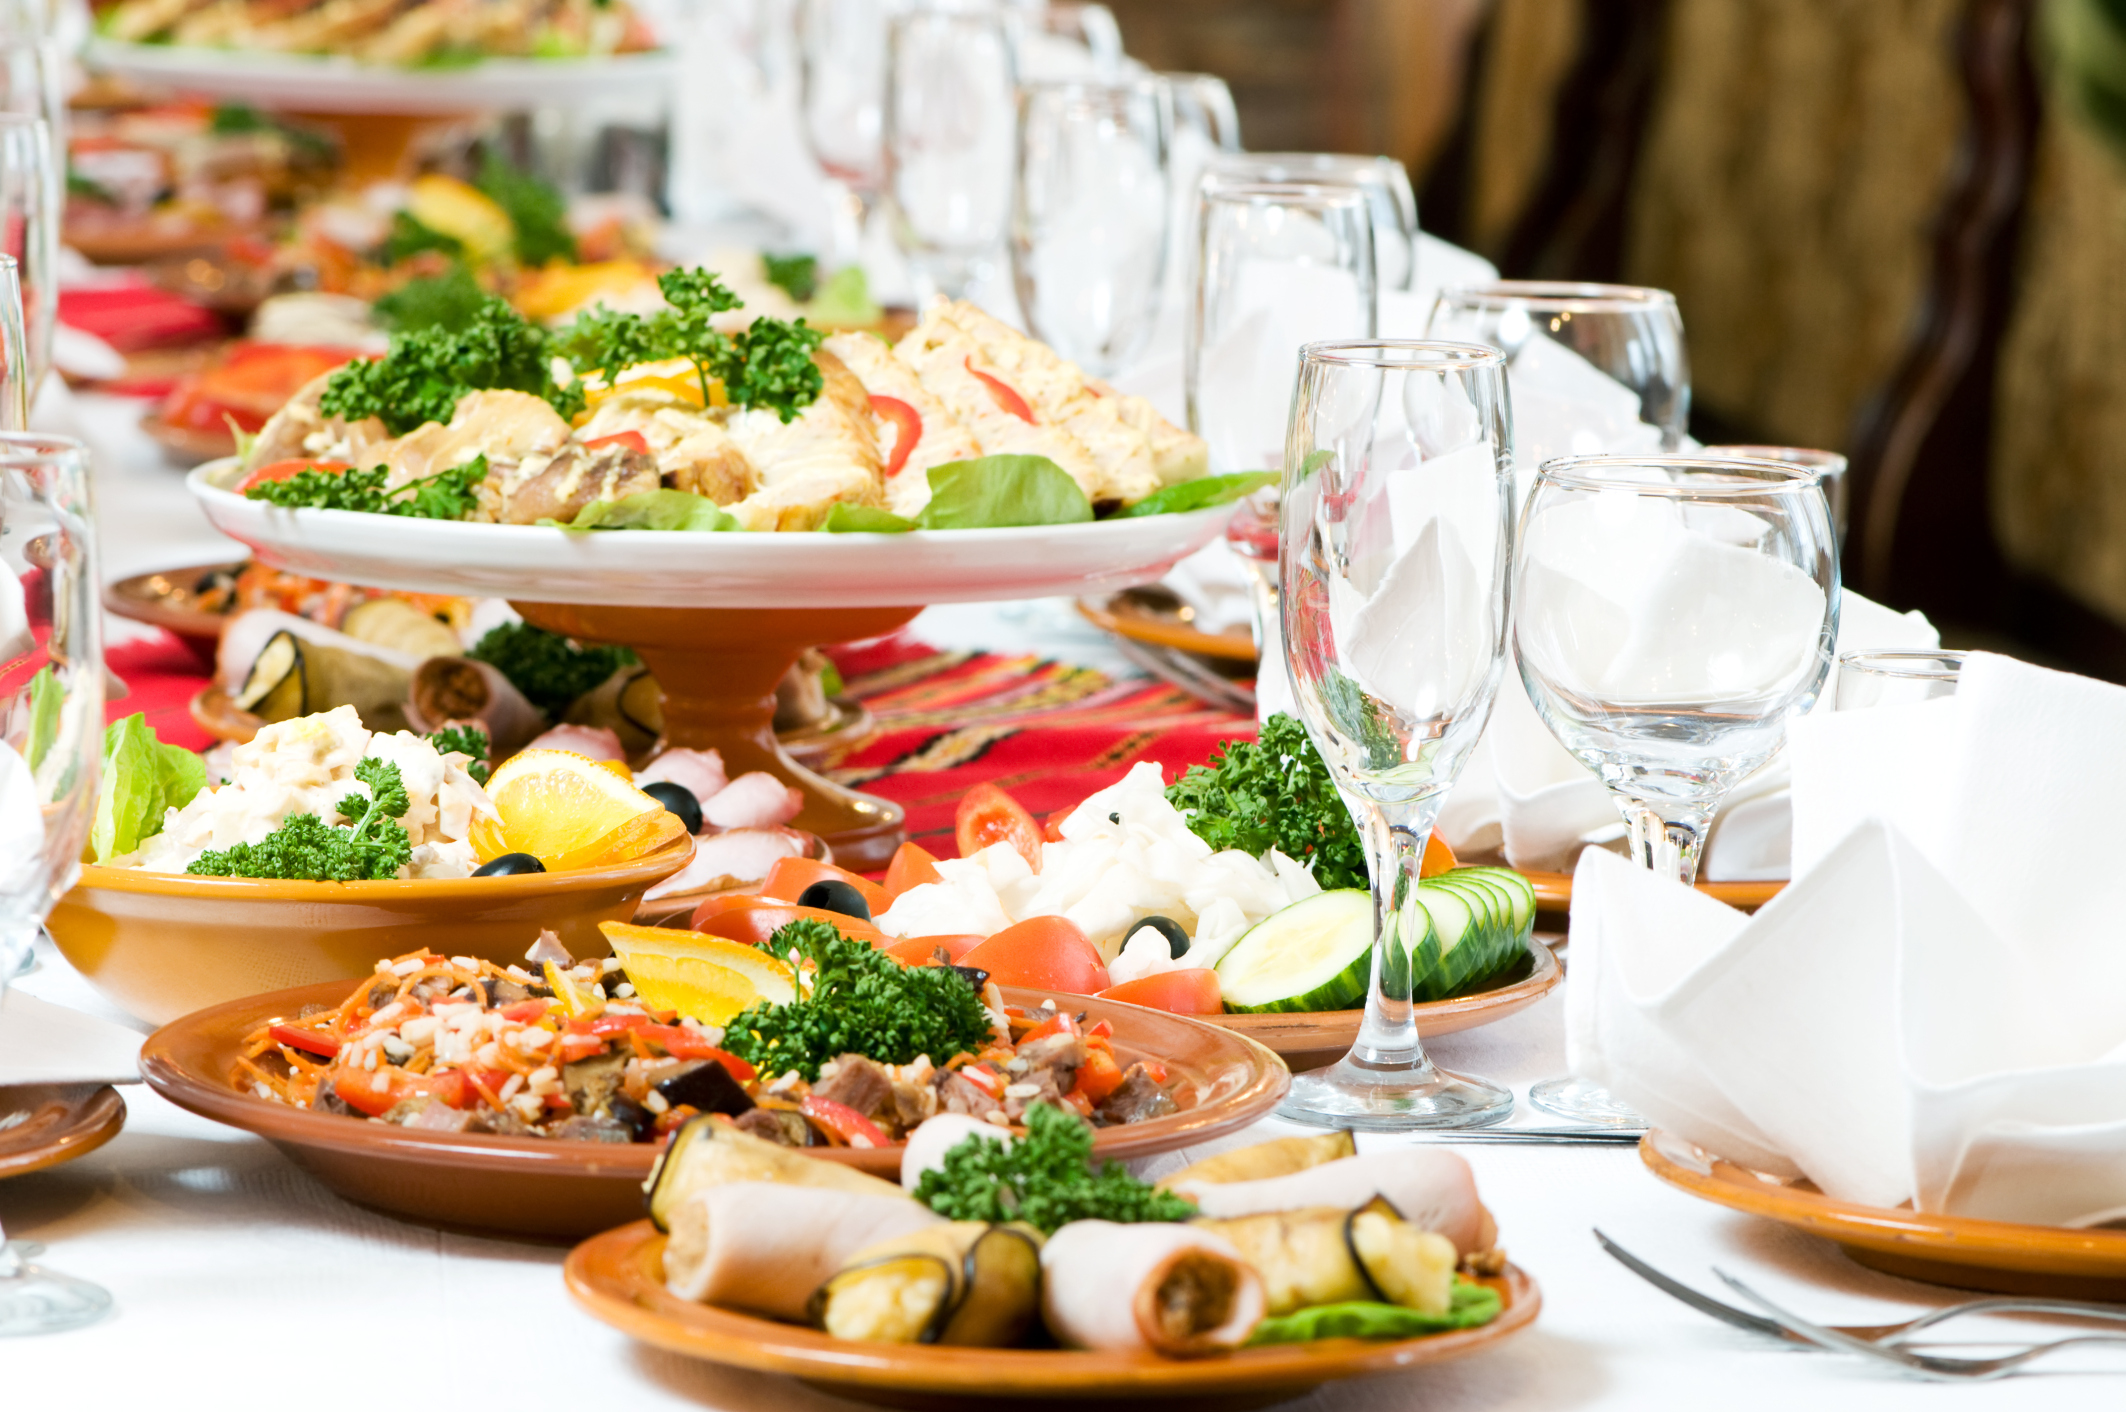 Get the Best Catering Service with The Foodist at Competitive Prices